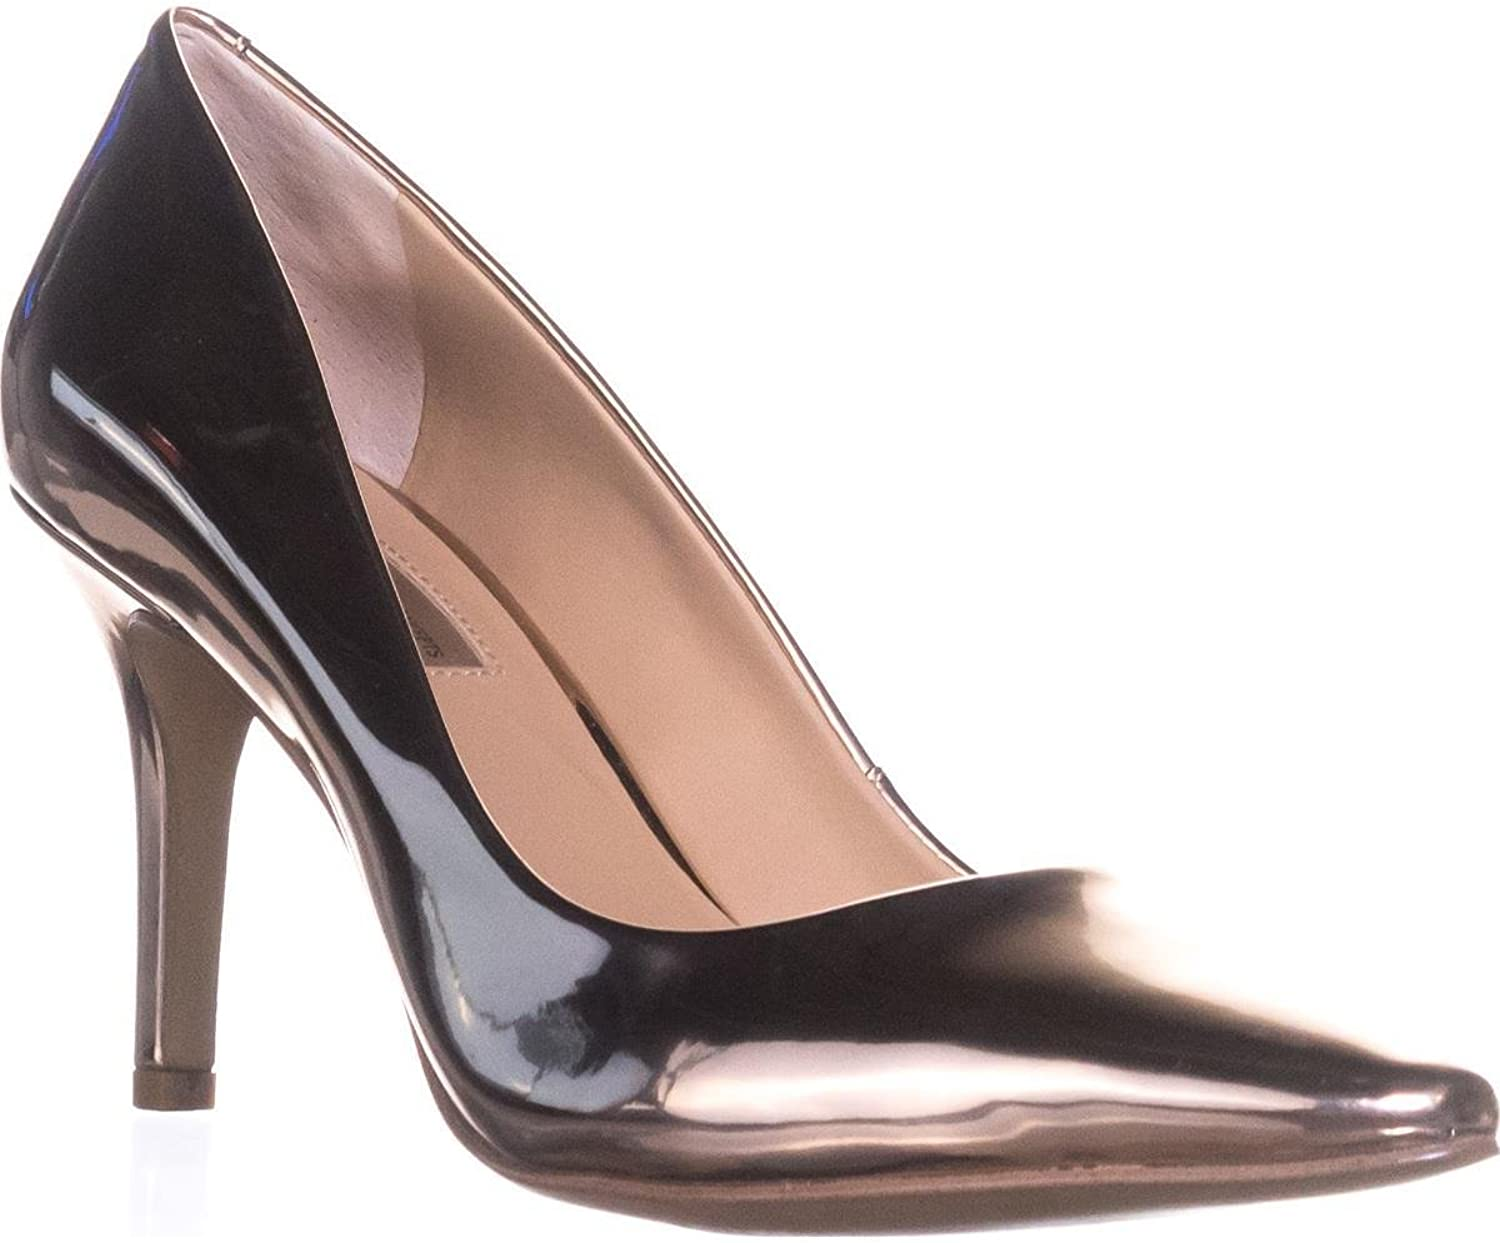 INC International Concepts I35 Zitah5 Pointed-Toe Heels, pink gold, 9 US